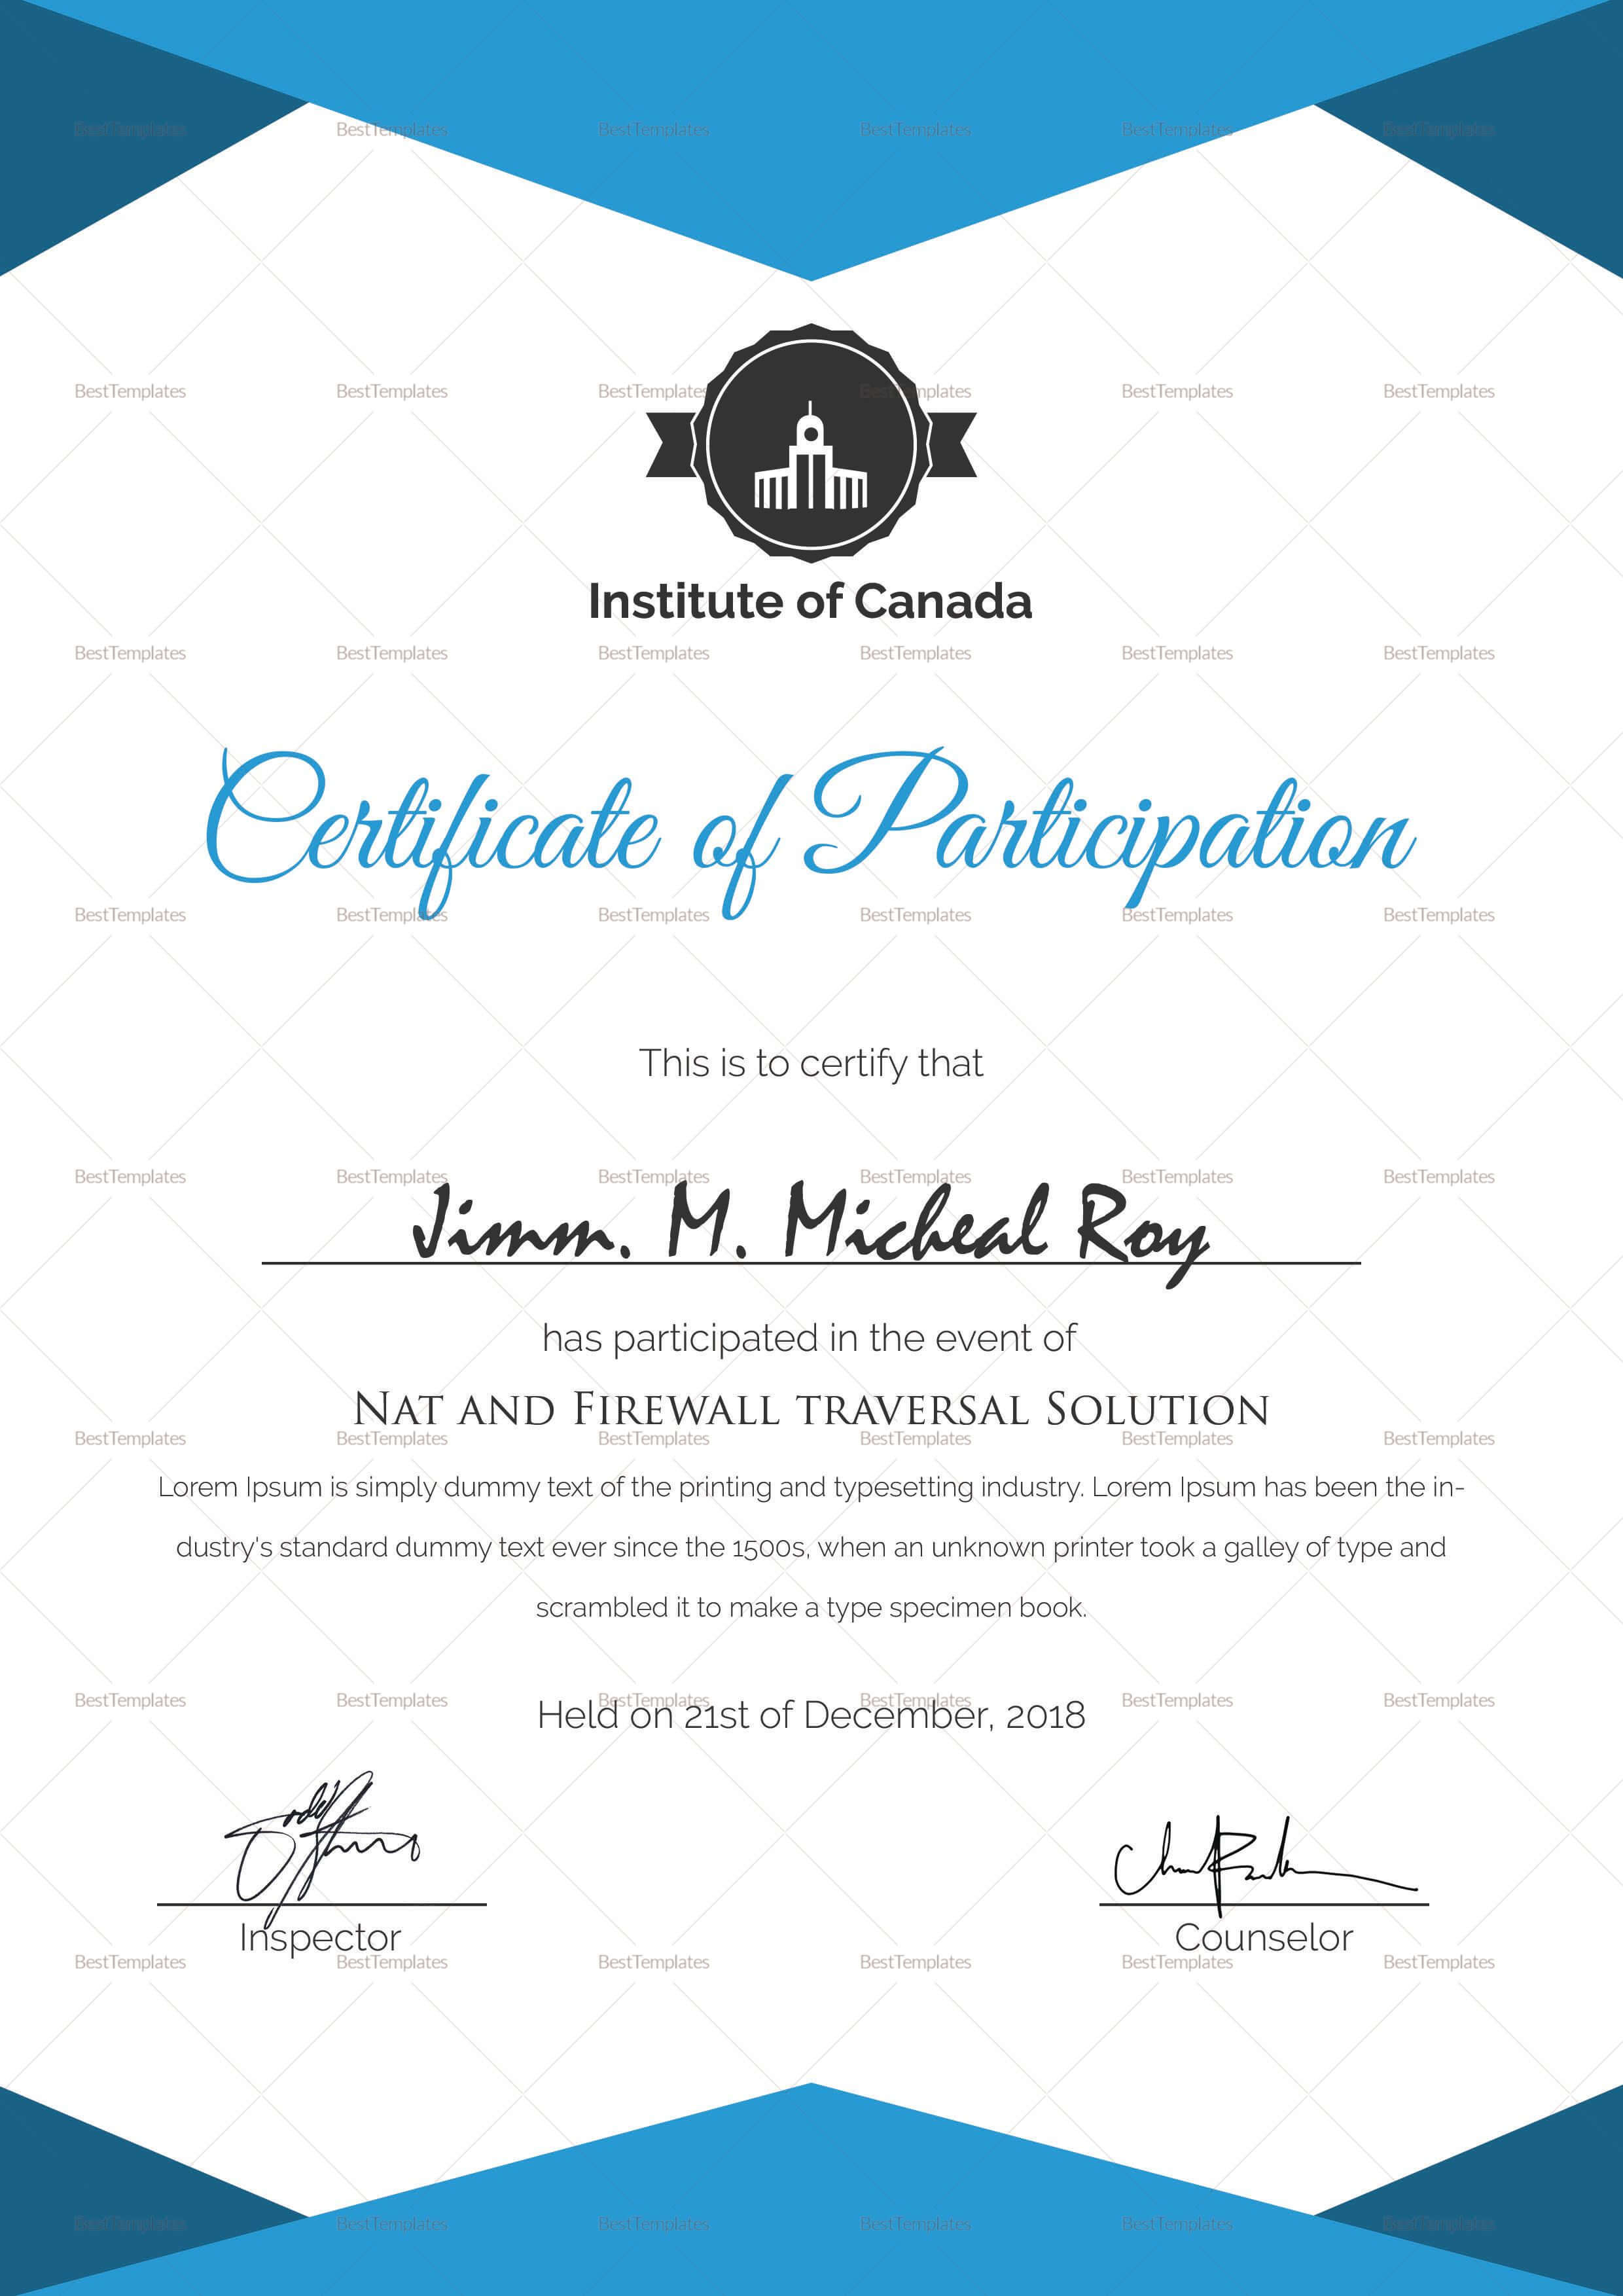 Sample Certificate Of Participation Template | Searchere Pertaining To Sample Certificate Of Participation Template